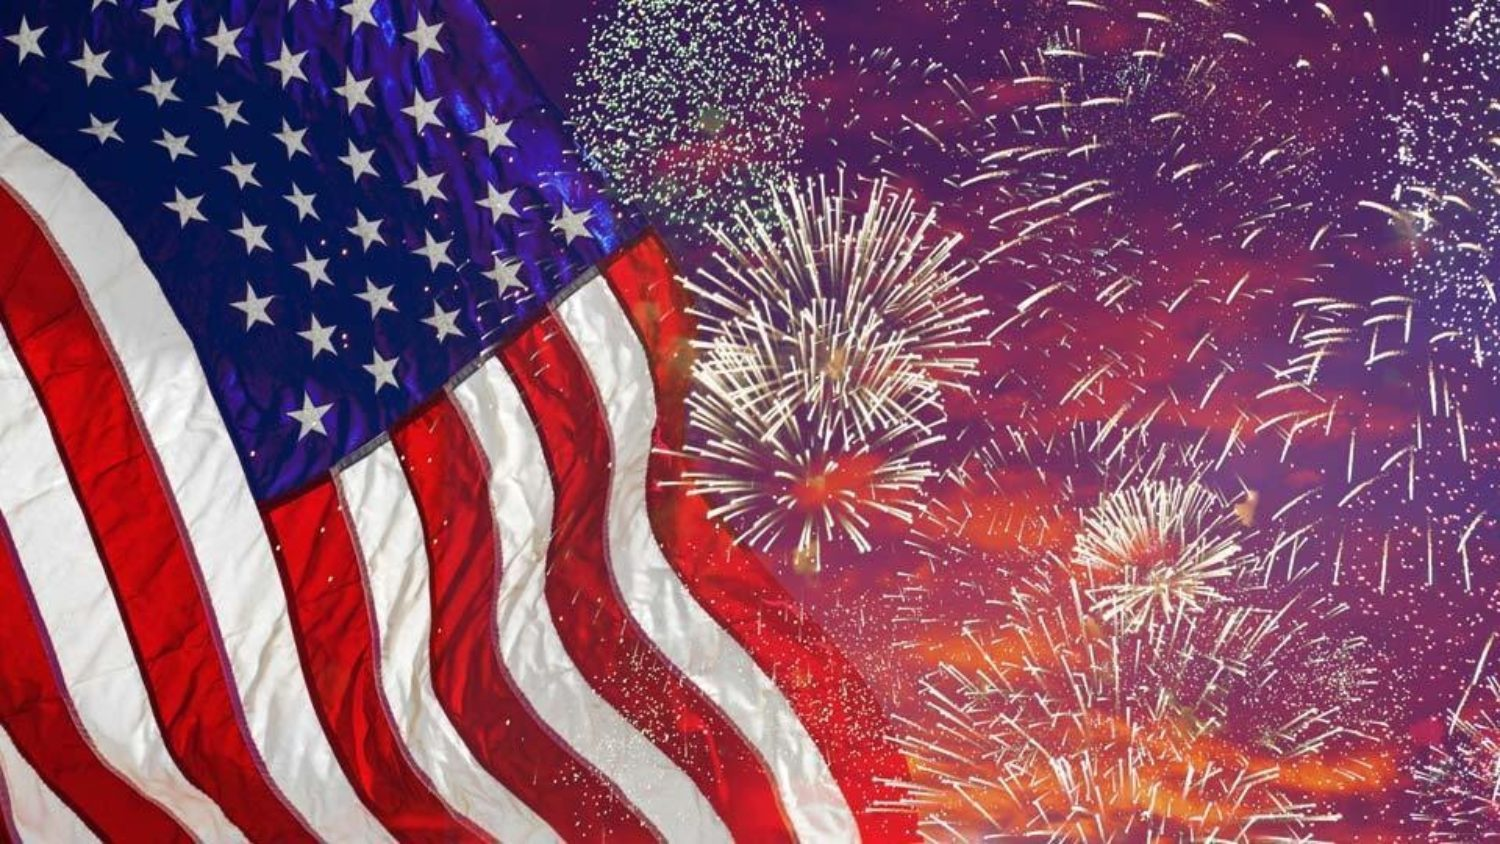 RED, WHITE, AND BLUE CELEBRATION!